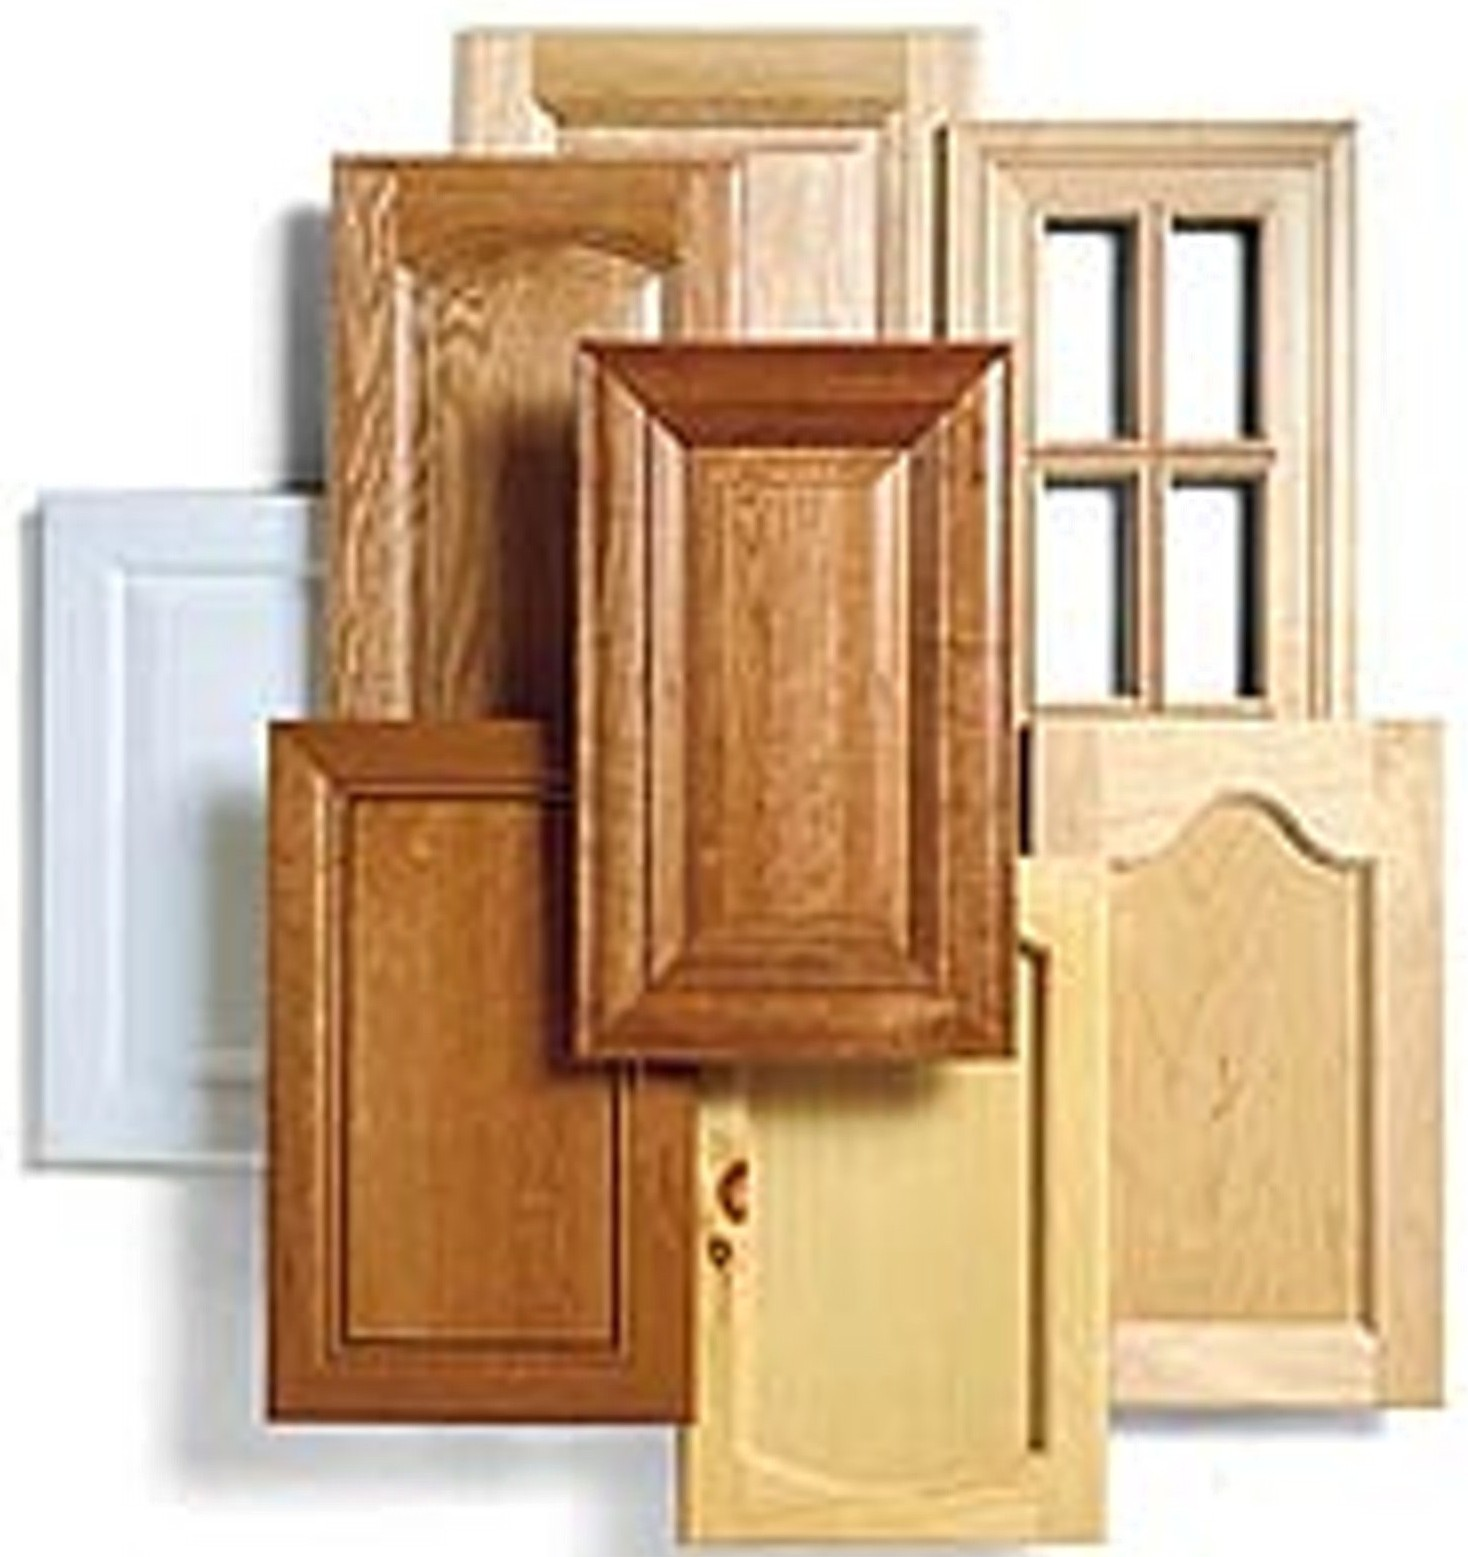 Solid Wood Kitchen Cabinet Door (Shaker Style), Kitchen Door